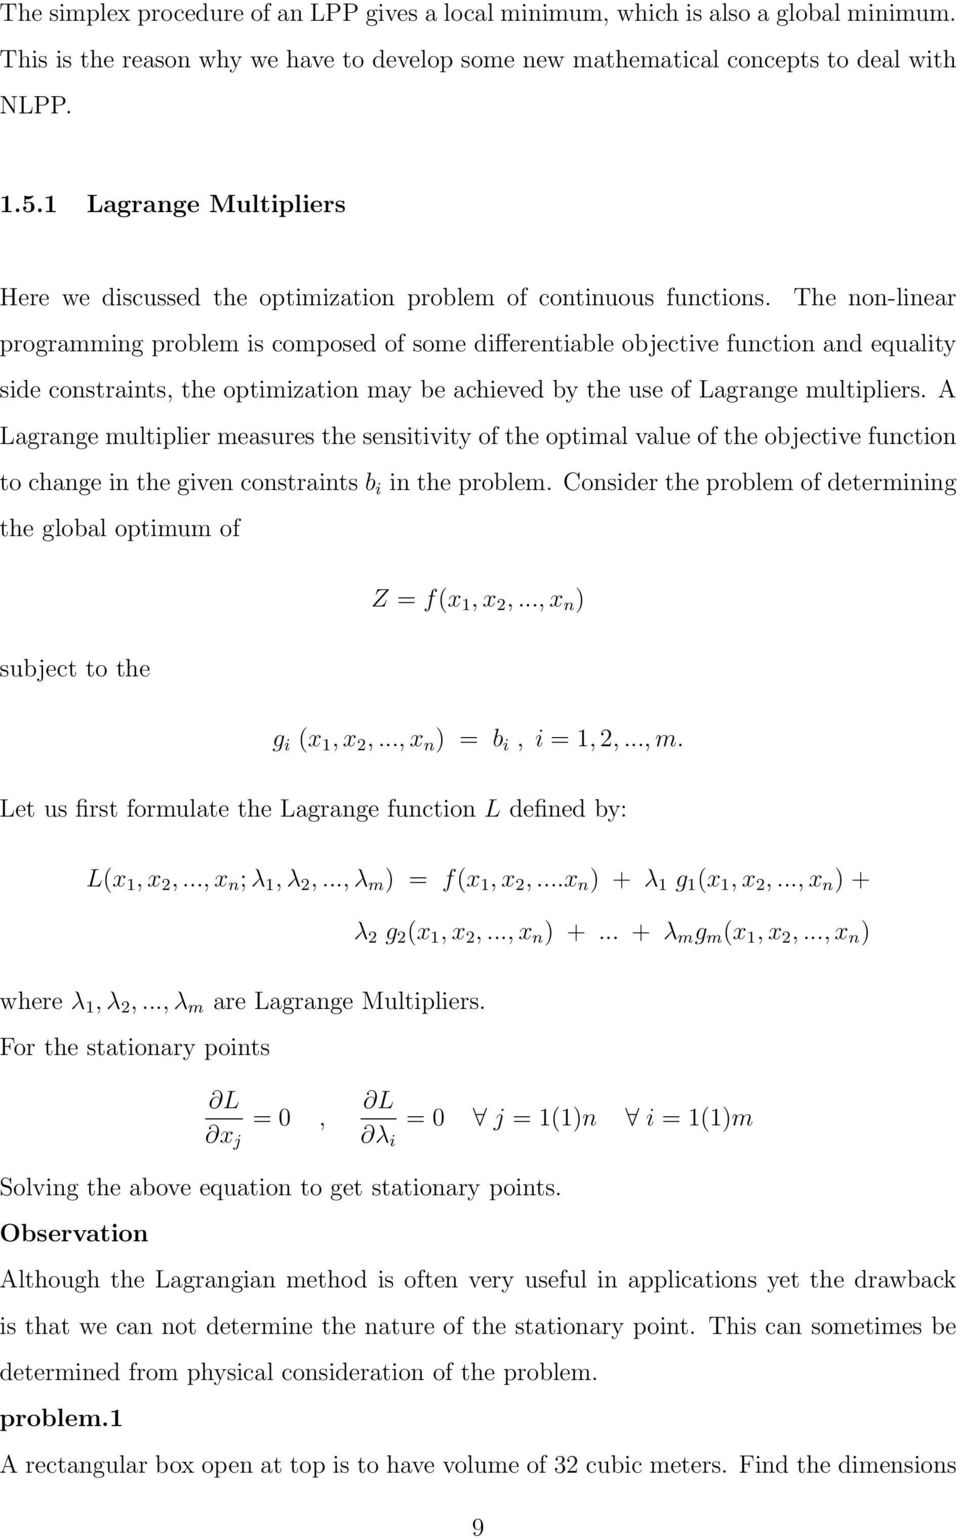 The non-linear programming problem is composed of some differentiable objective function and equality side constraints, the optimization may be achieved by the use of Lagrange multipliers.